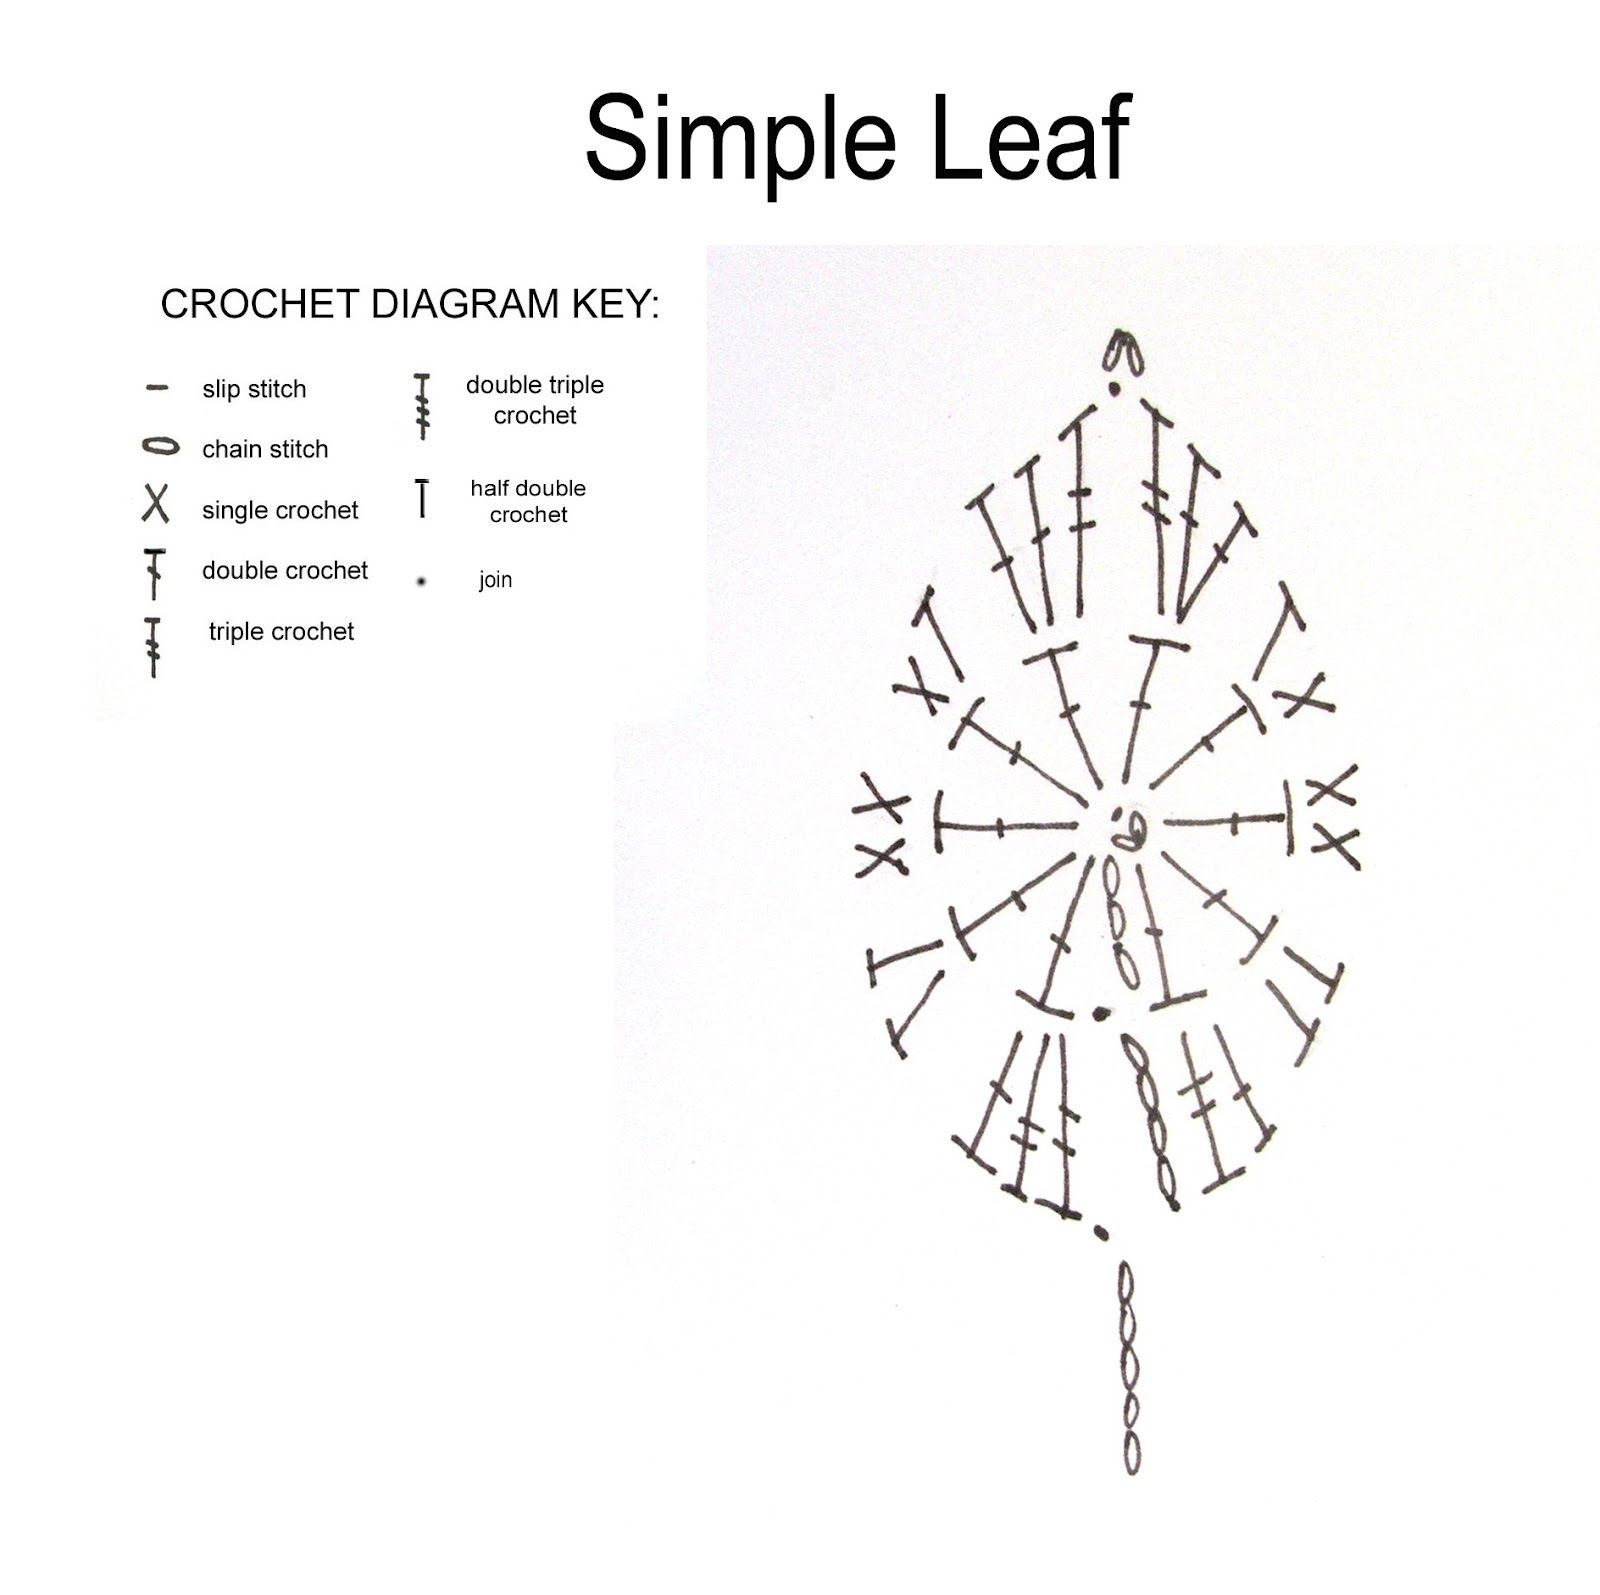 Susans hippie crochet free simple leaf crochet pattern the i thought id post a link to my super easy simple leaf pattern as well as the crochet diagram i really like designing leaves ccuart Image collections